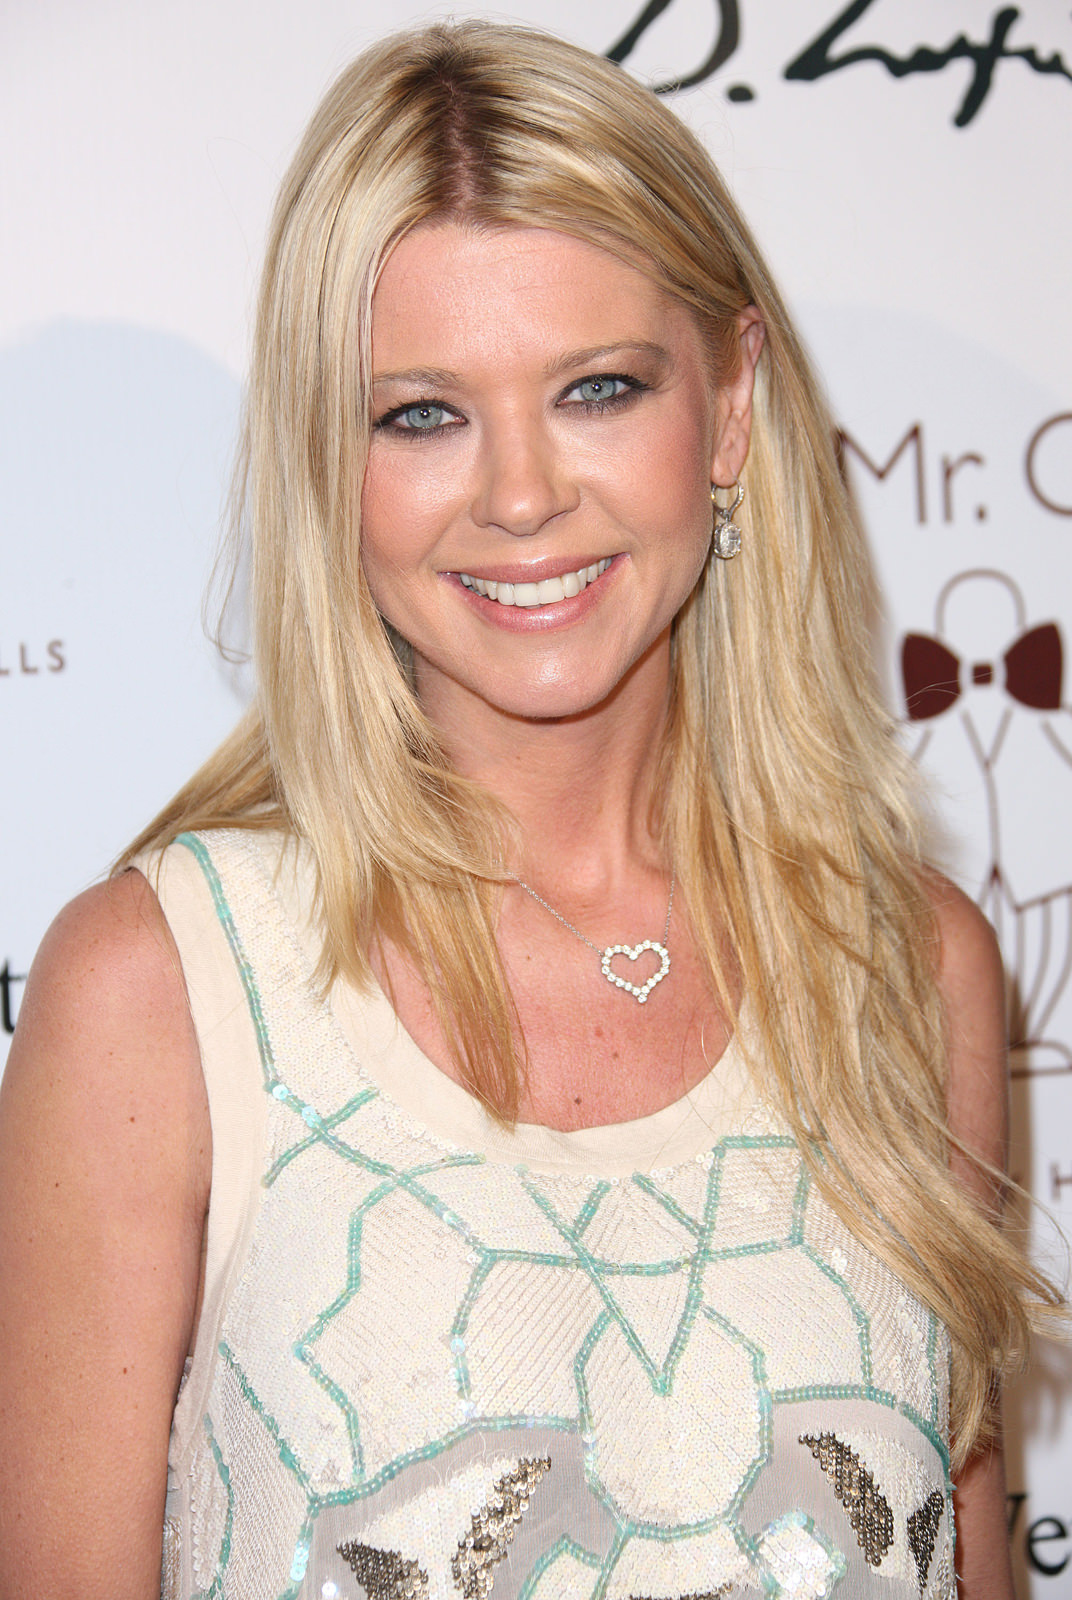 Tara Reid Photo Gallery